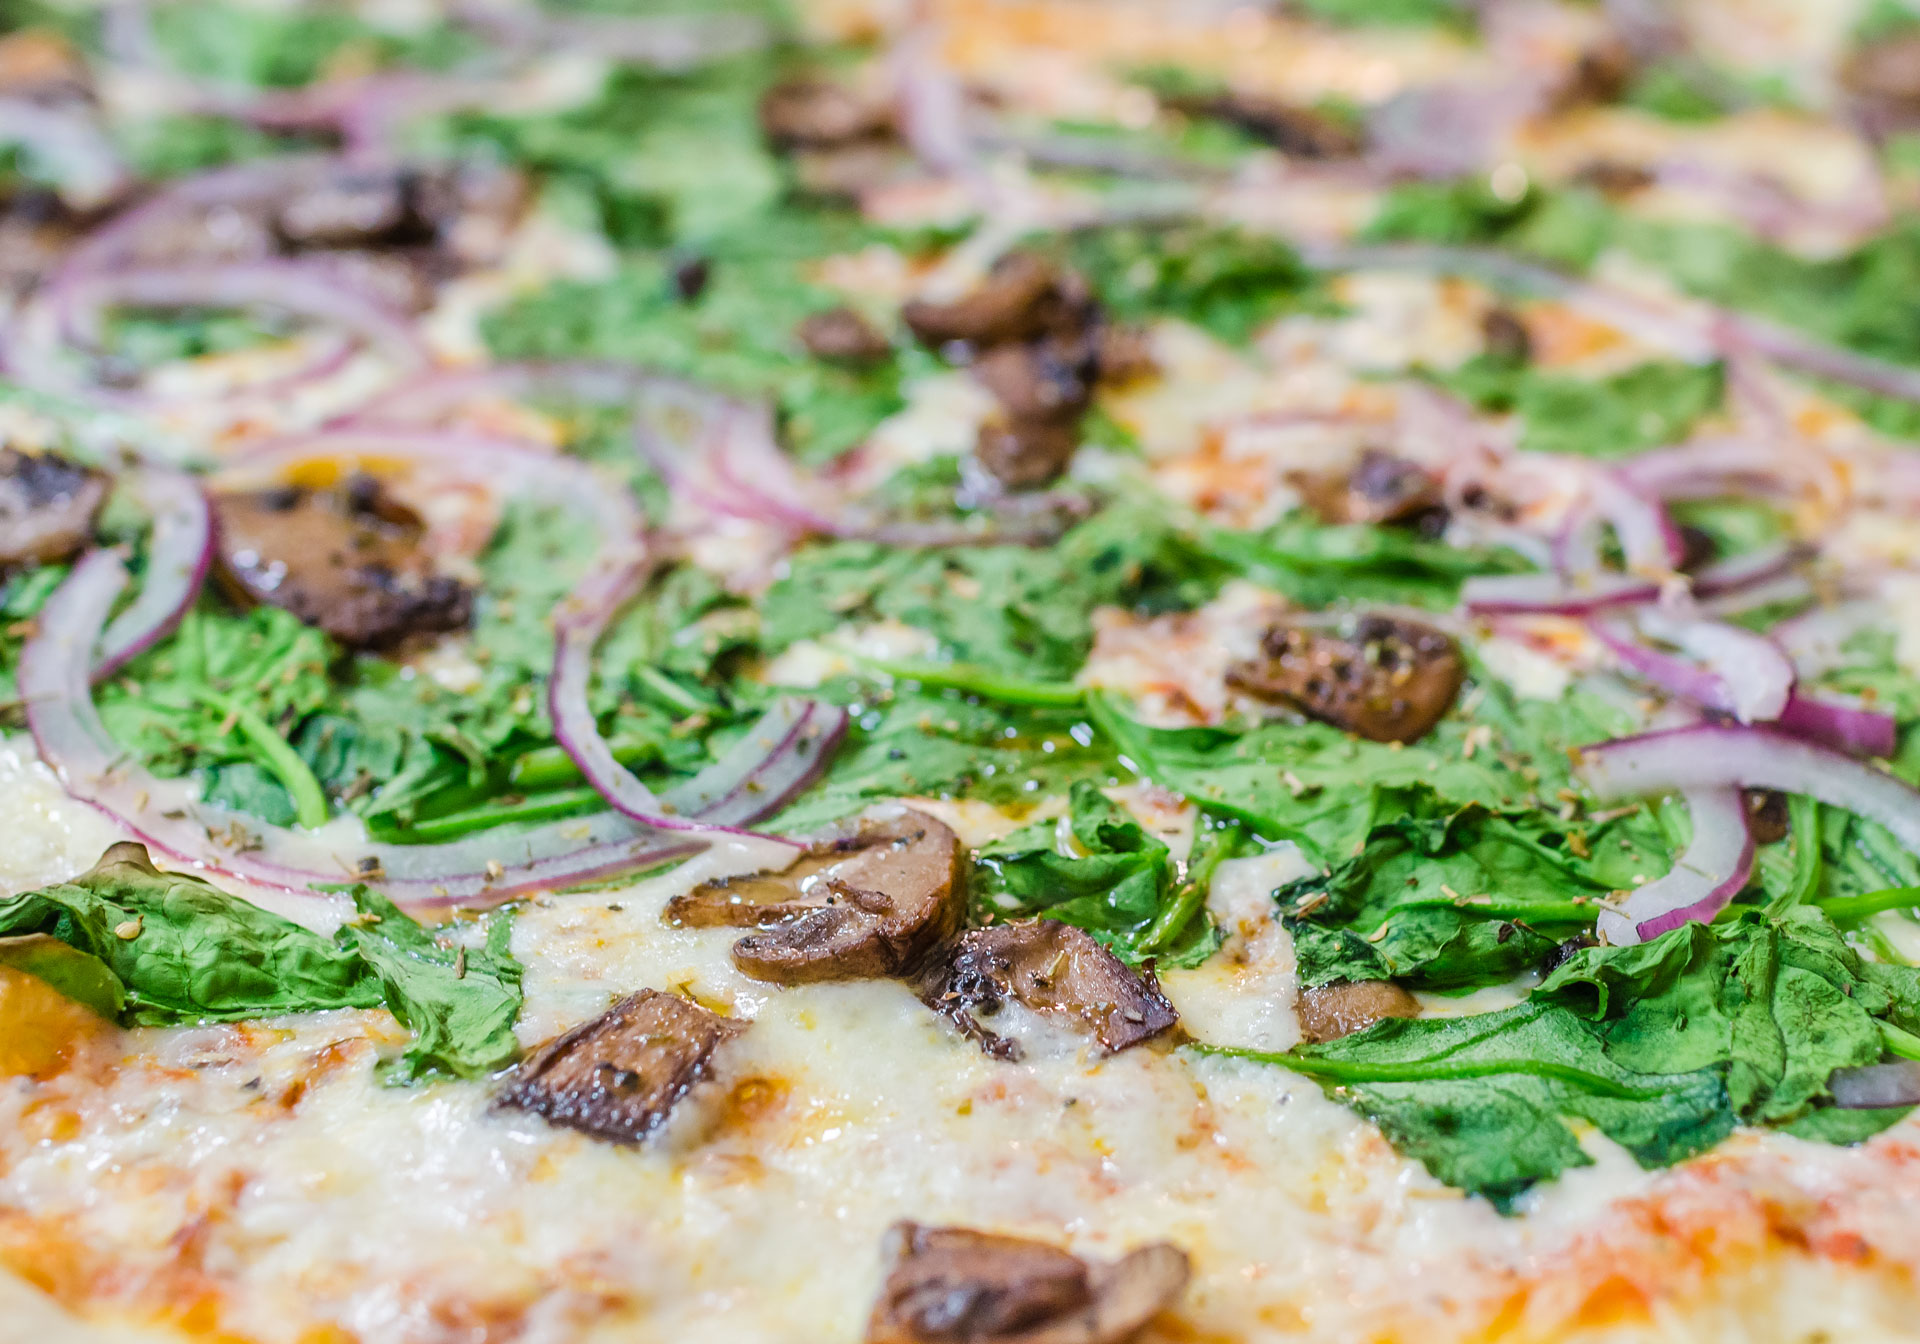 Whether you like pizza, chicken wings or cheese fries, we use only the freshest ingredients and make everything from scratch. From roasting vegetables for our dipping sauces, to making fresh dough each day, we put extra care into our cooking. All our food is available for delivery, so order online today!